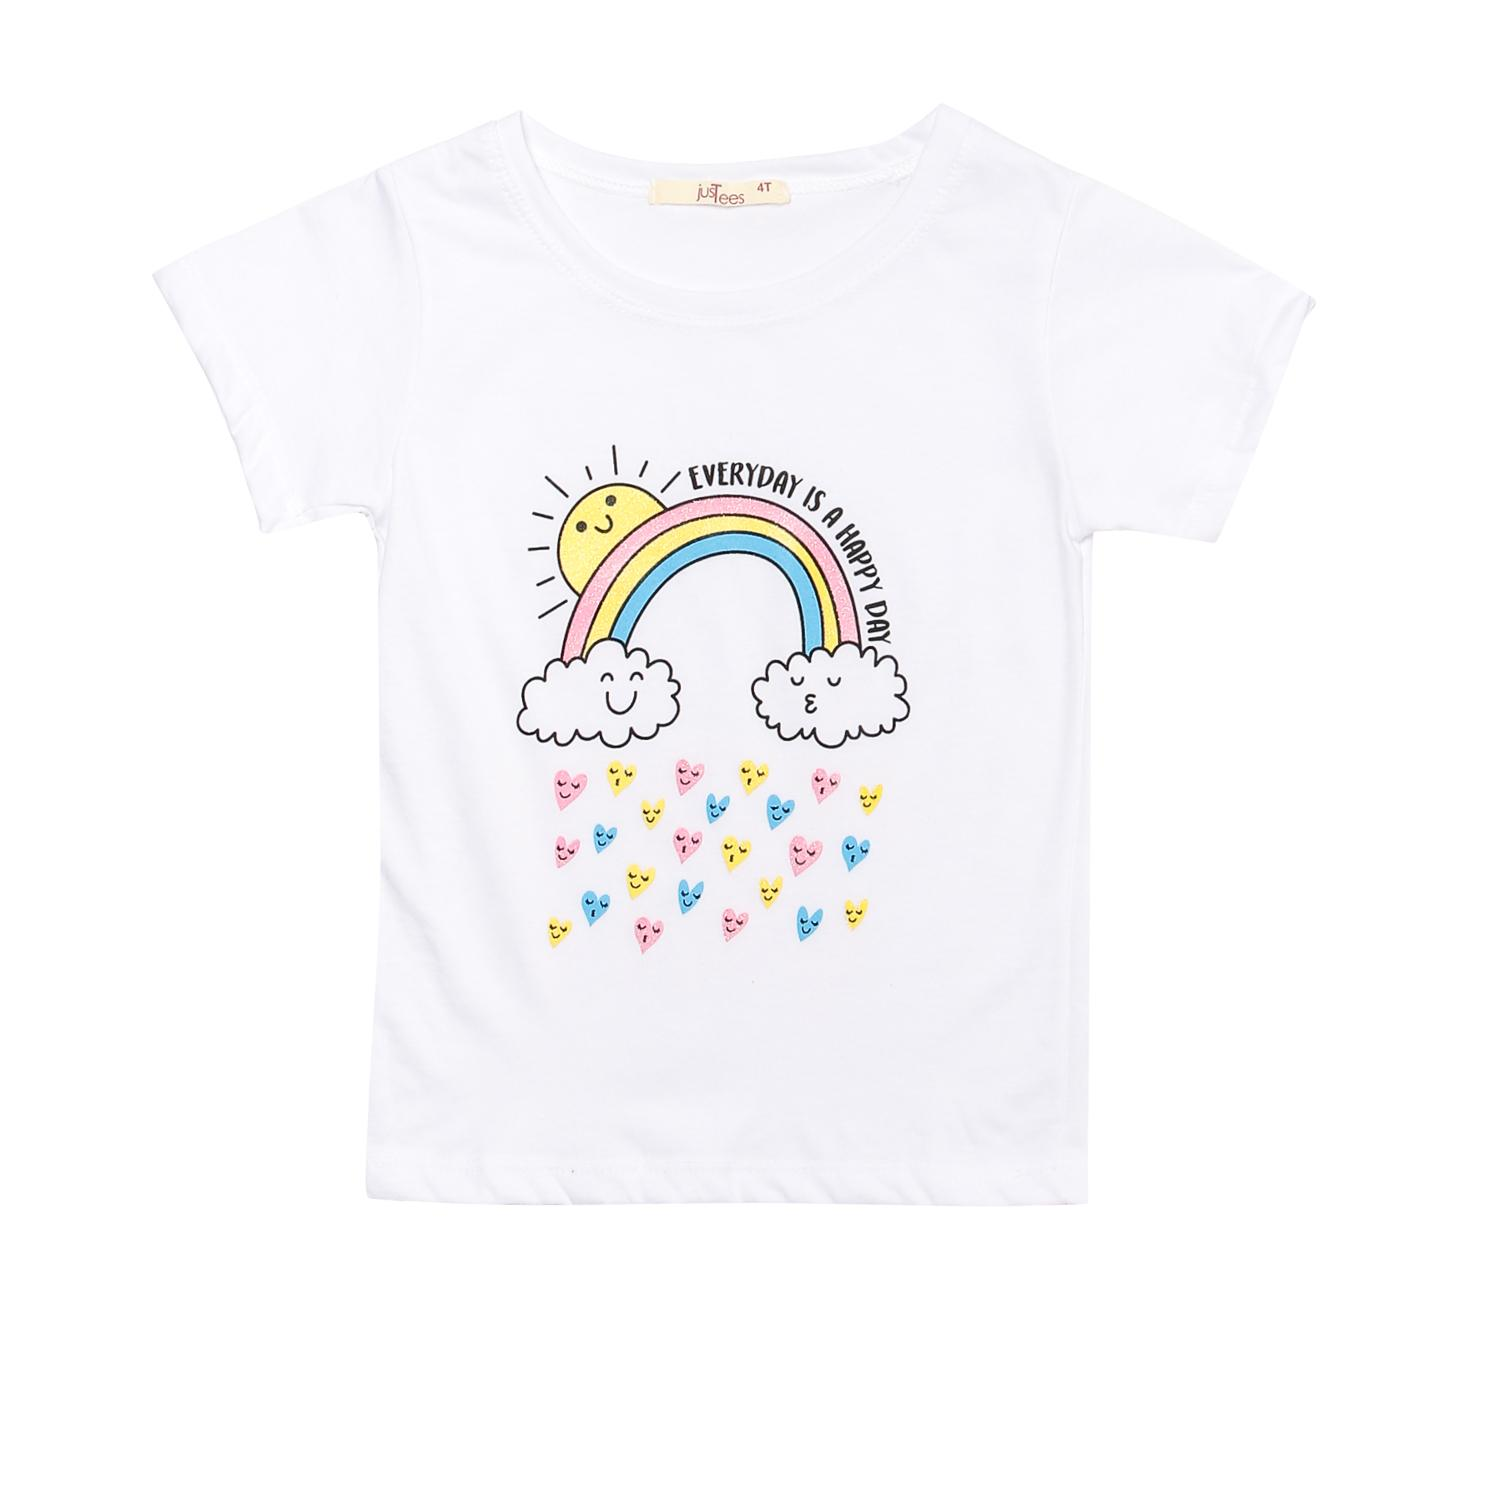 b3ef255b6bc3 Young Girls Clothing for sale - Baby Clothing for Girls online ...